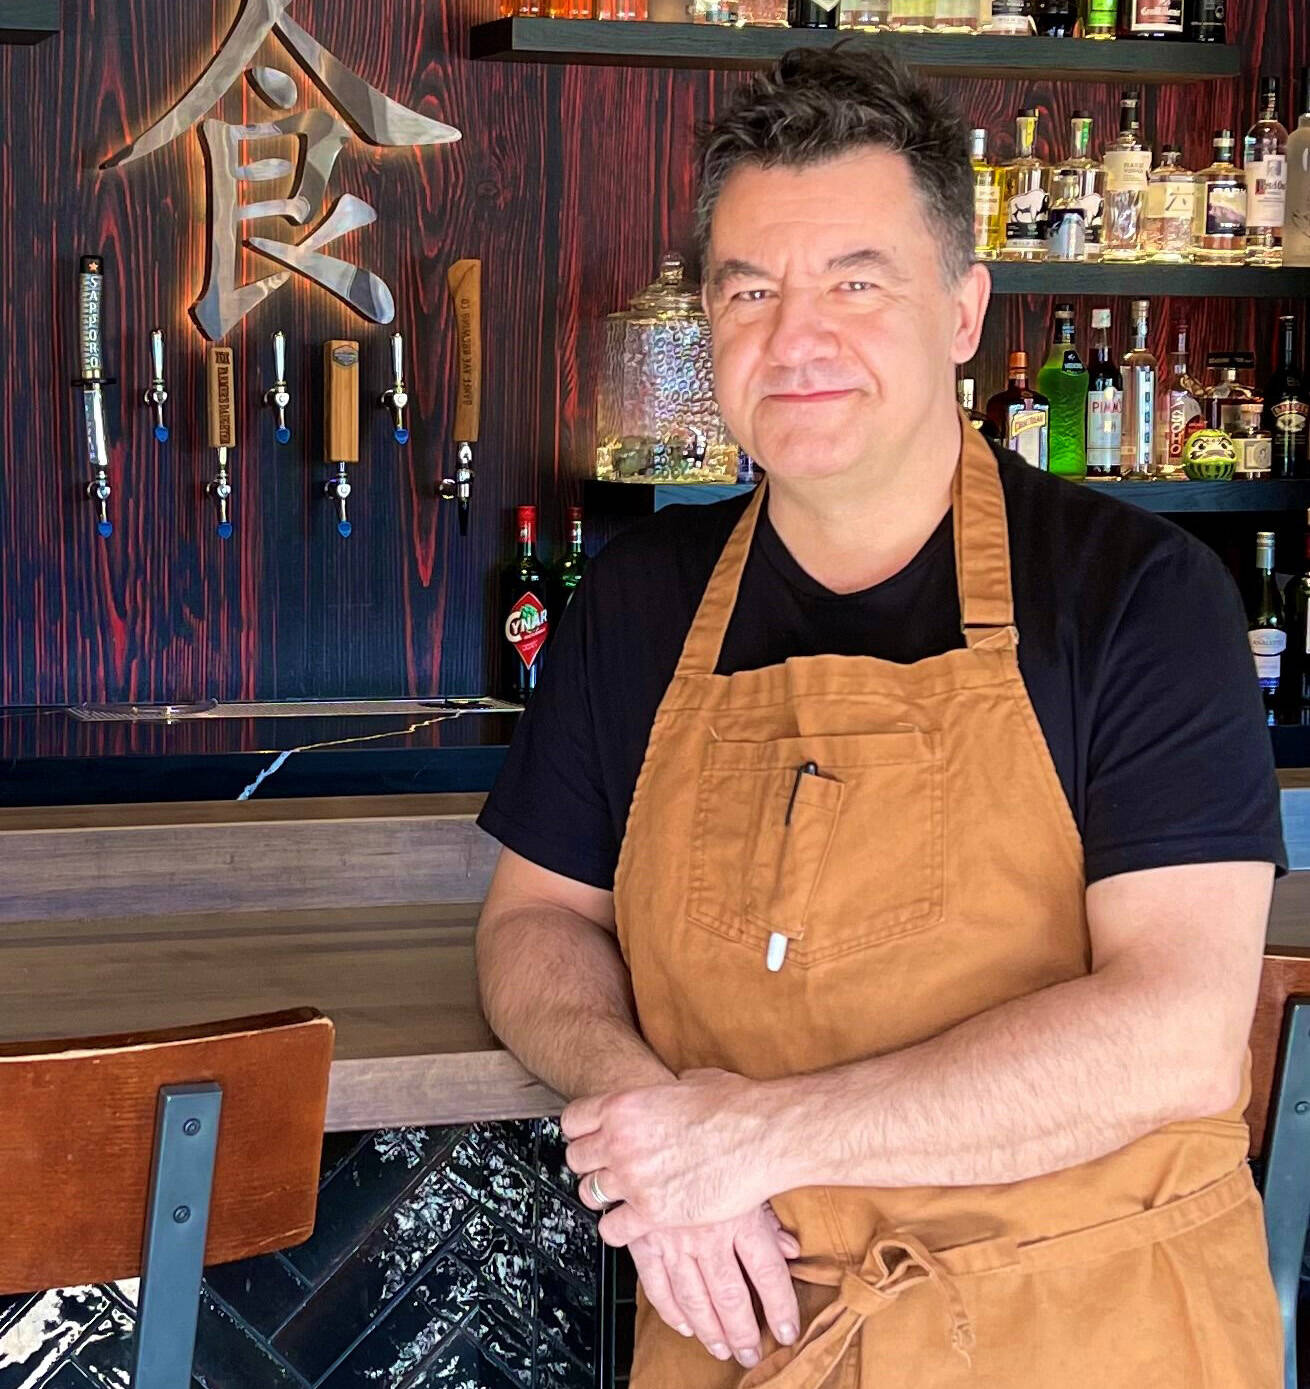 Stephane Prevost, a Banff restaurateur, poses in this handout photo. THE CANADIAN PRESS/HO